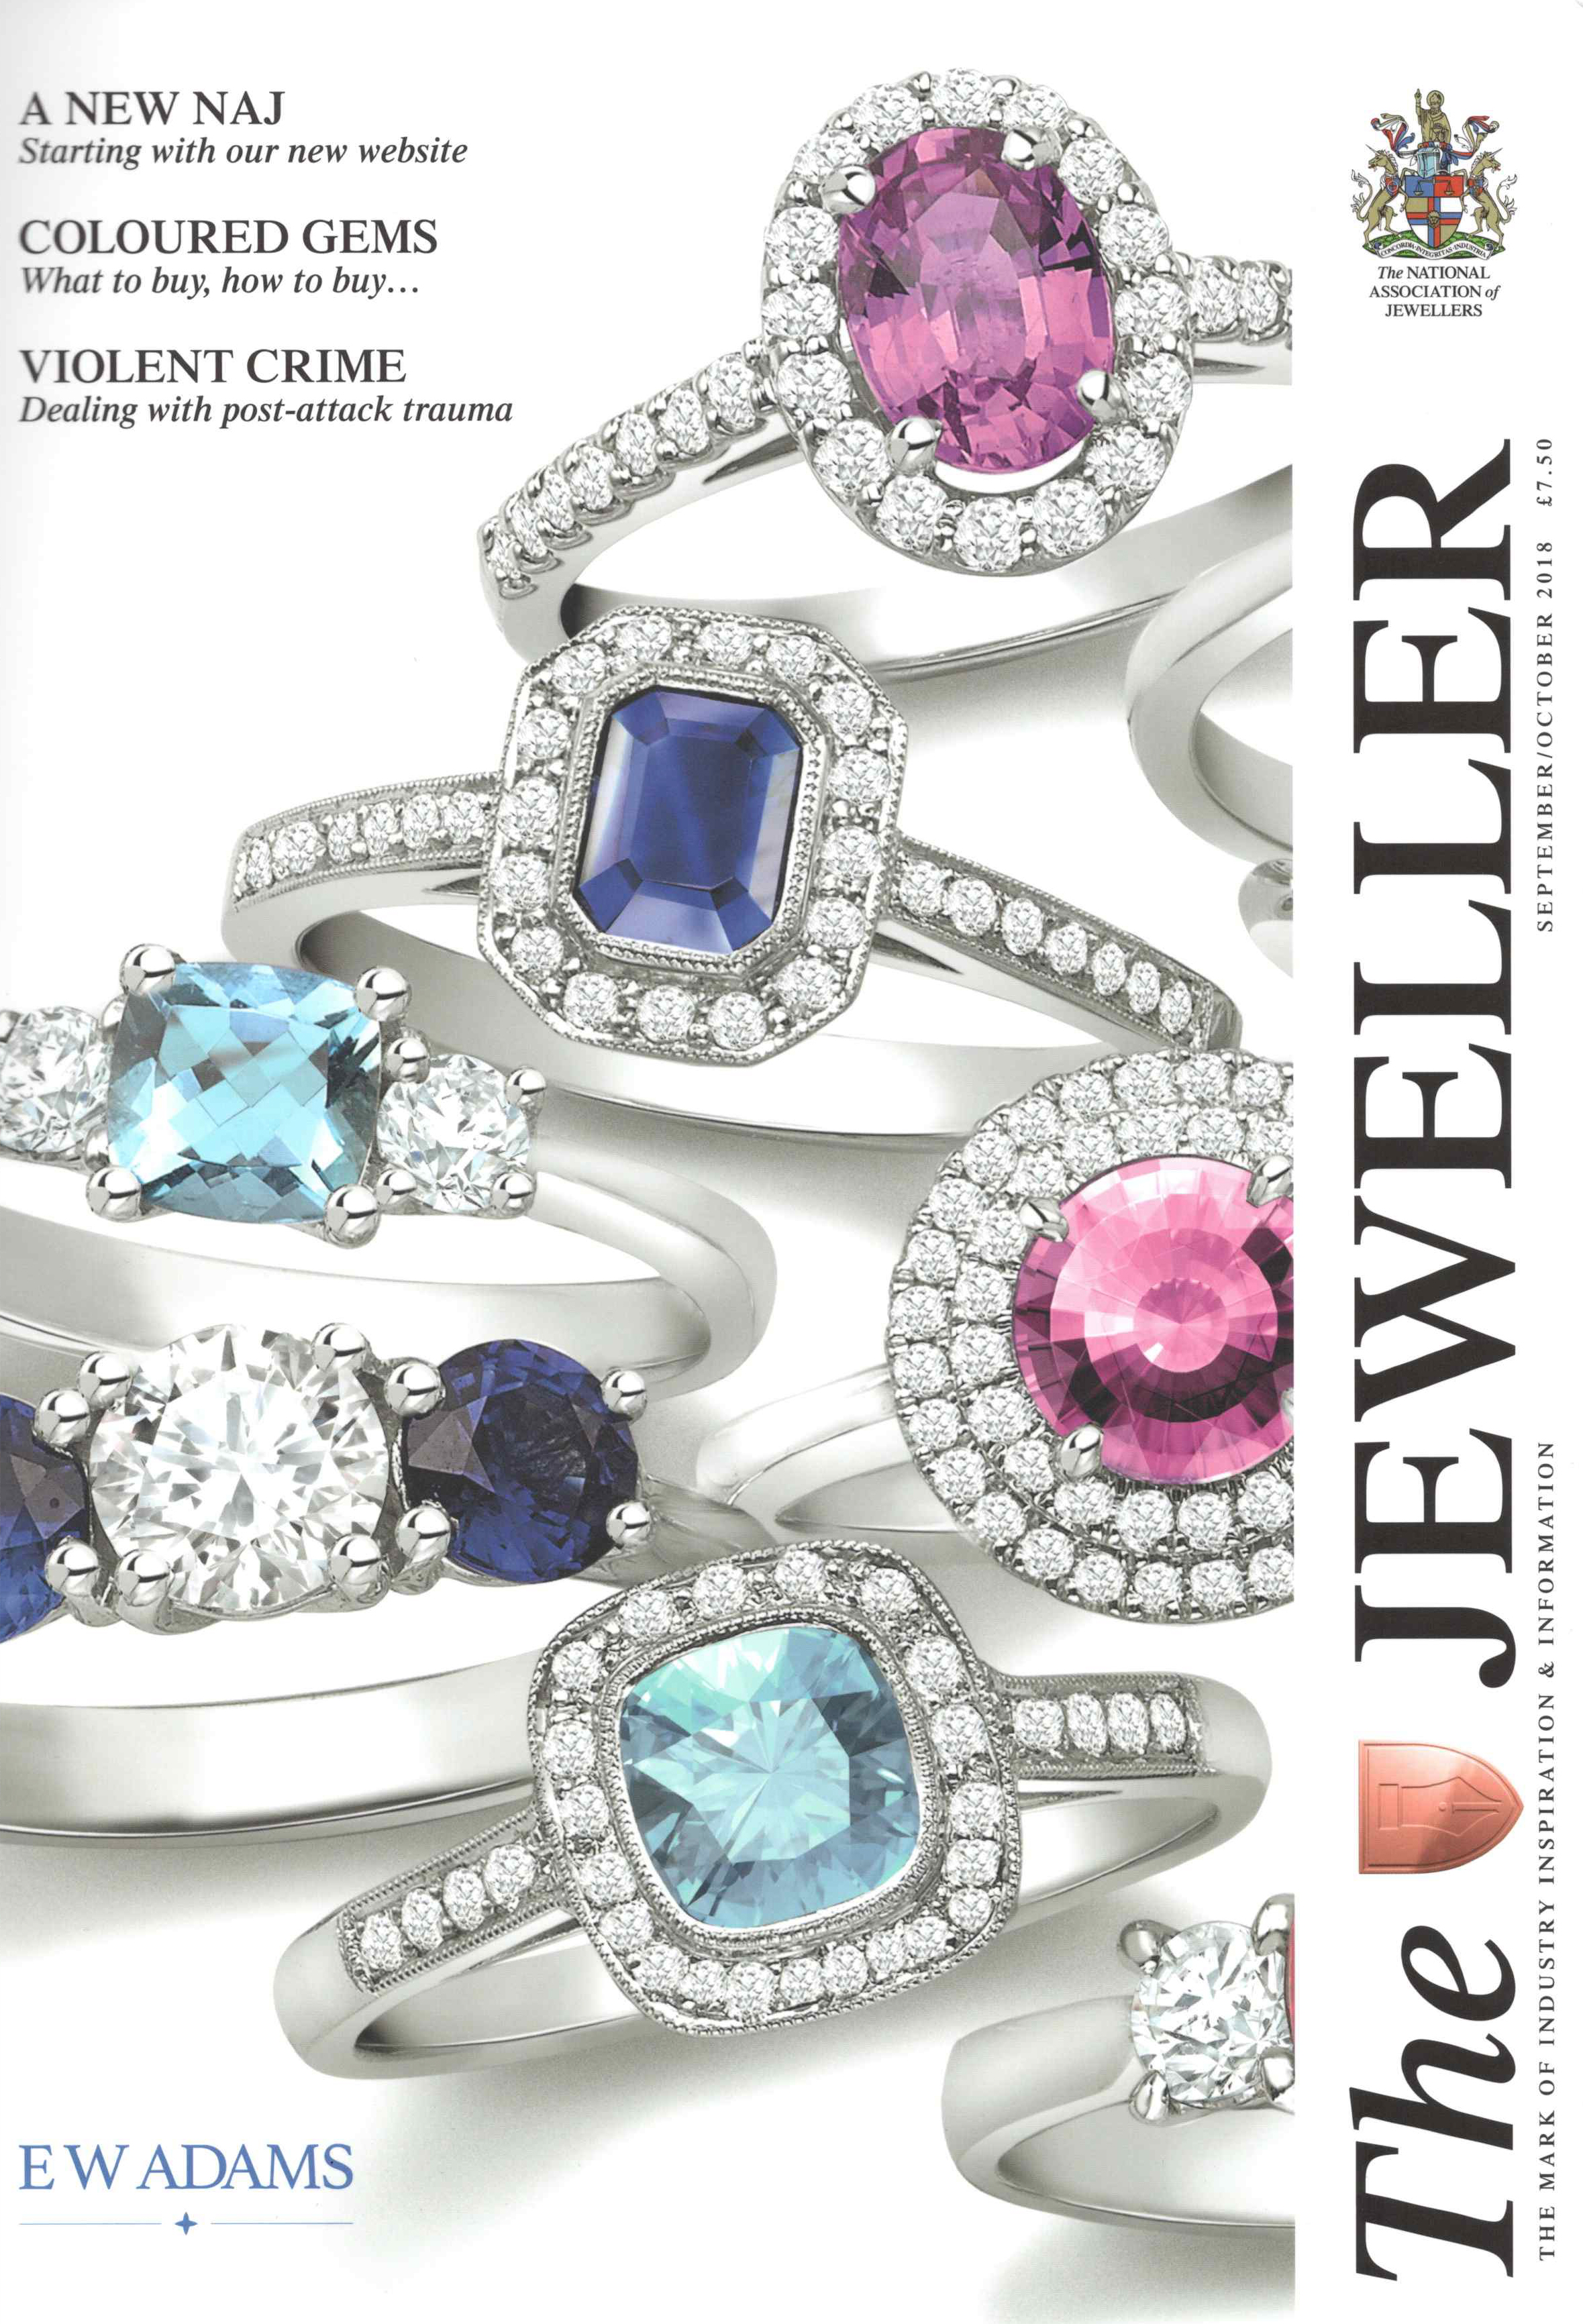 The Jeweller September/October 2018